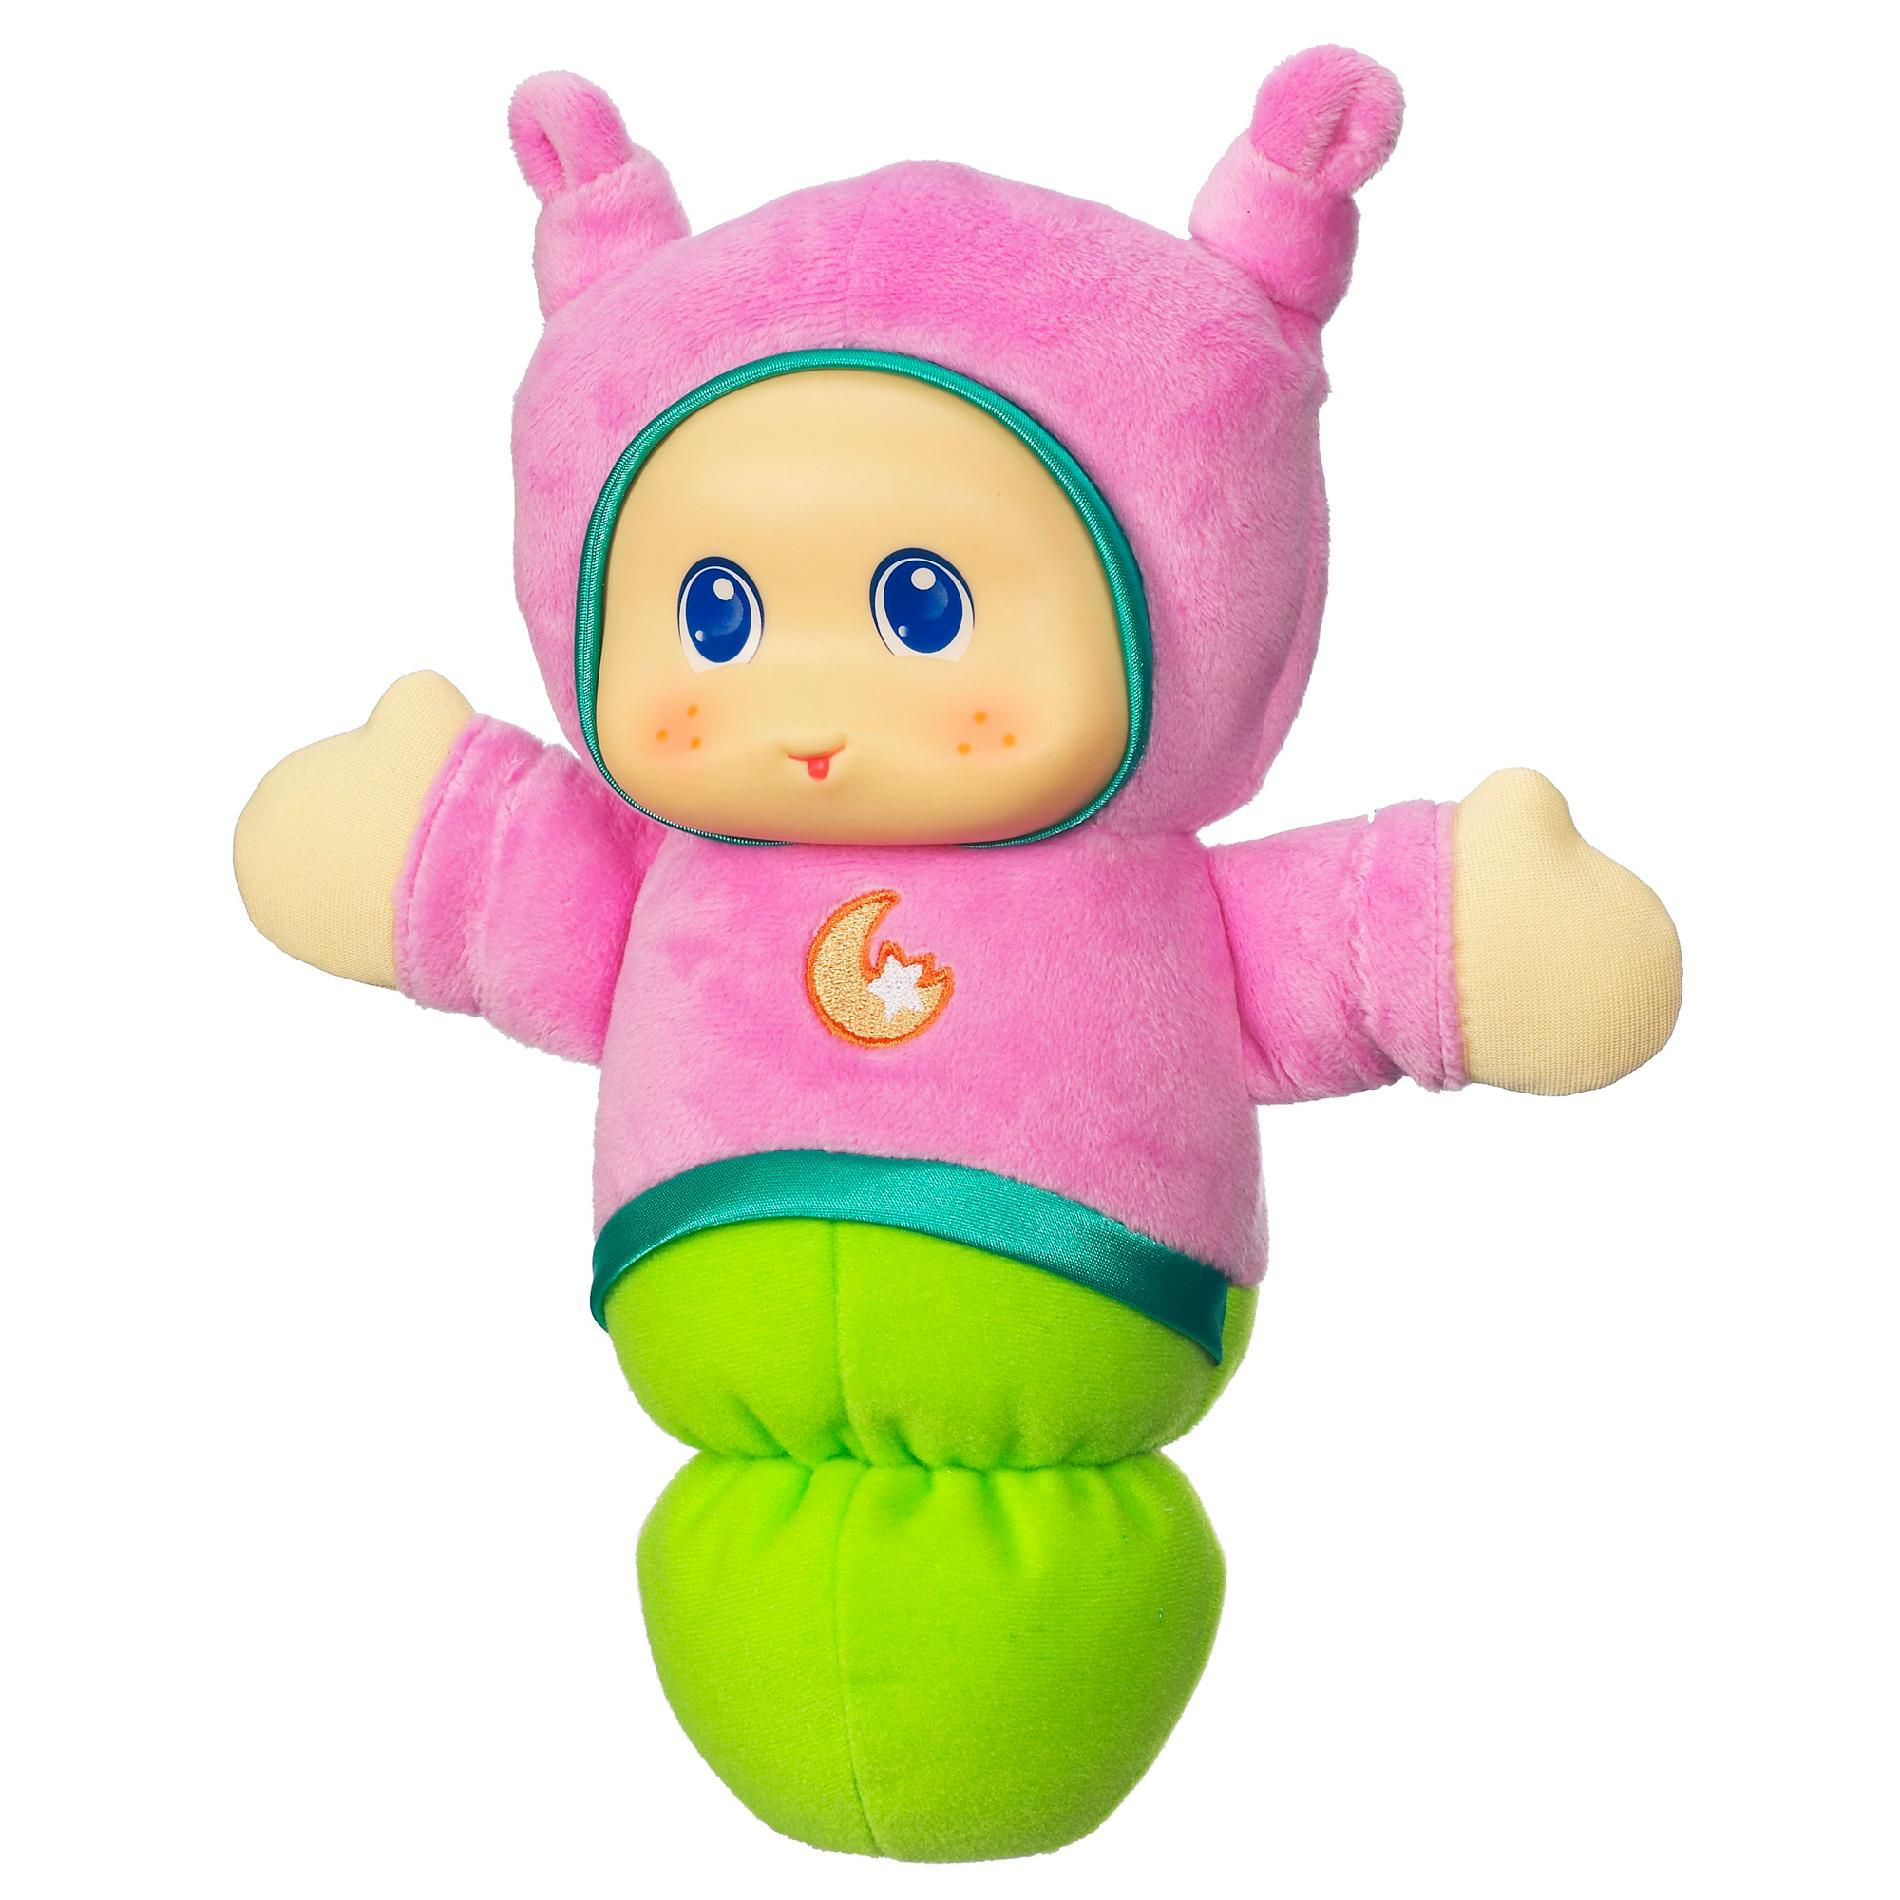 Glow Toys For Bedtime Playskool Play Favorites Lullaby Gloworm Toy Pink